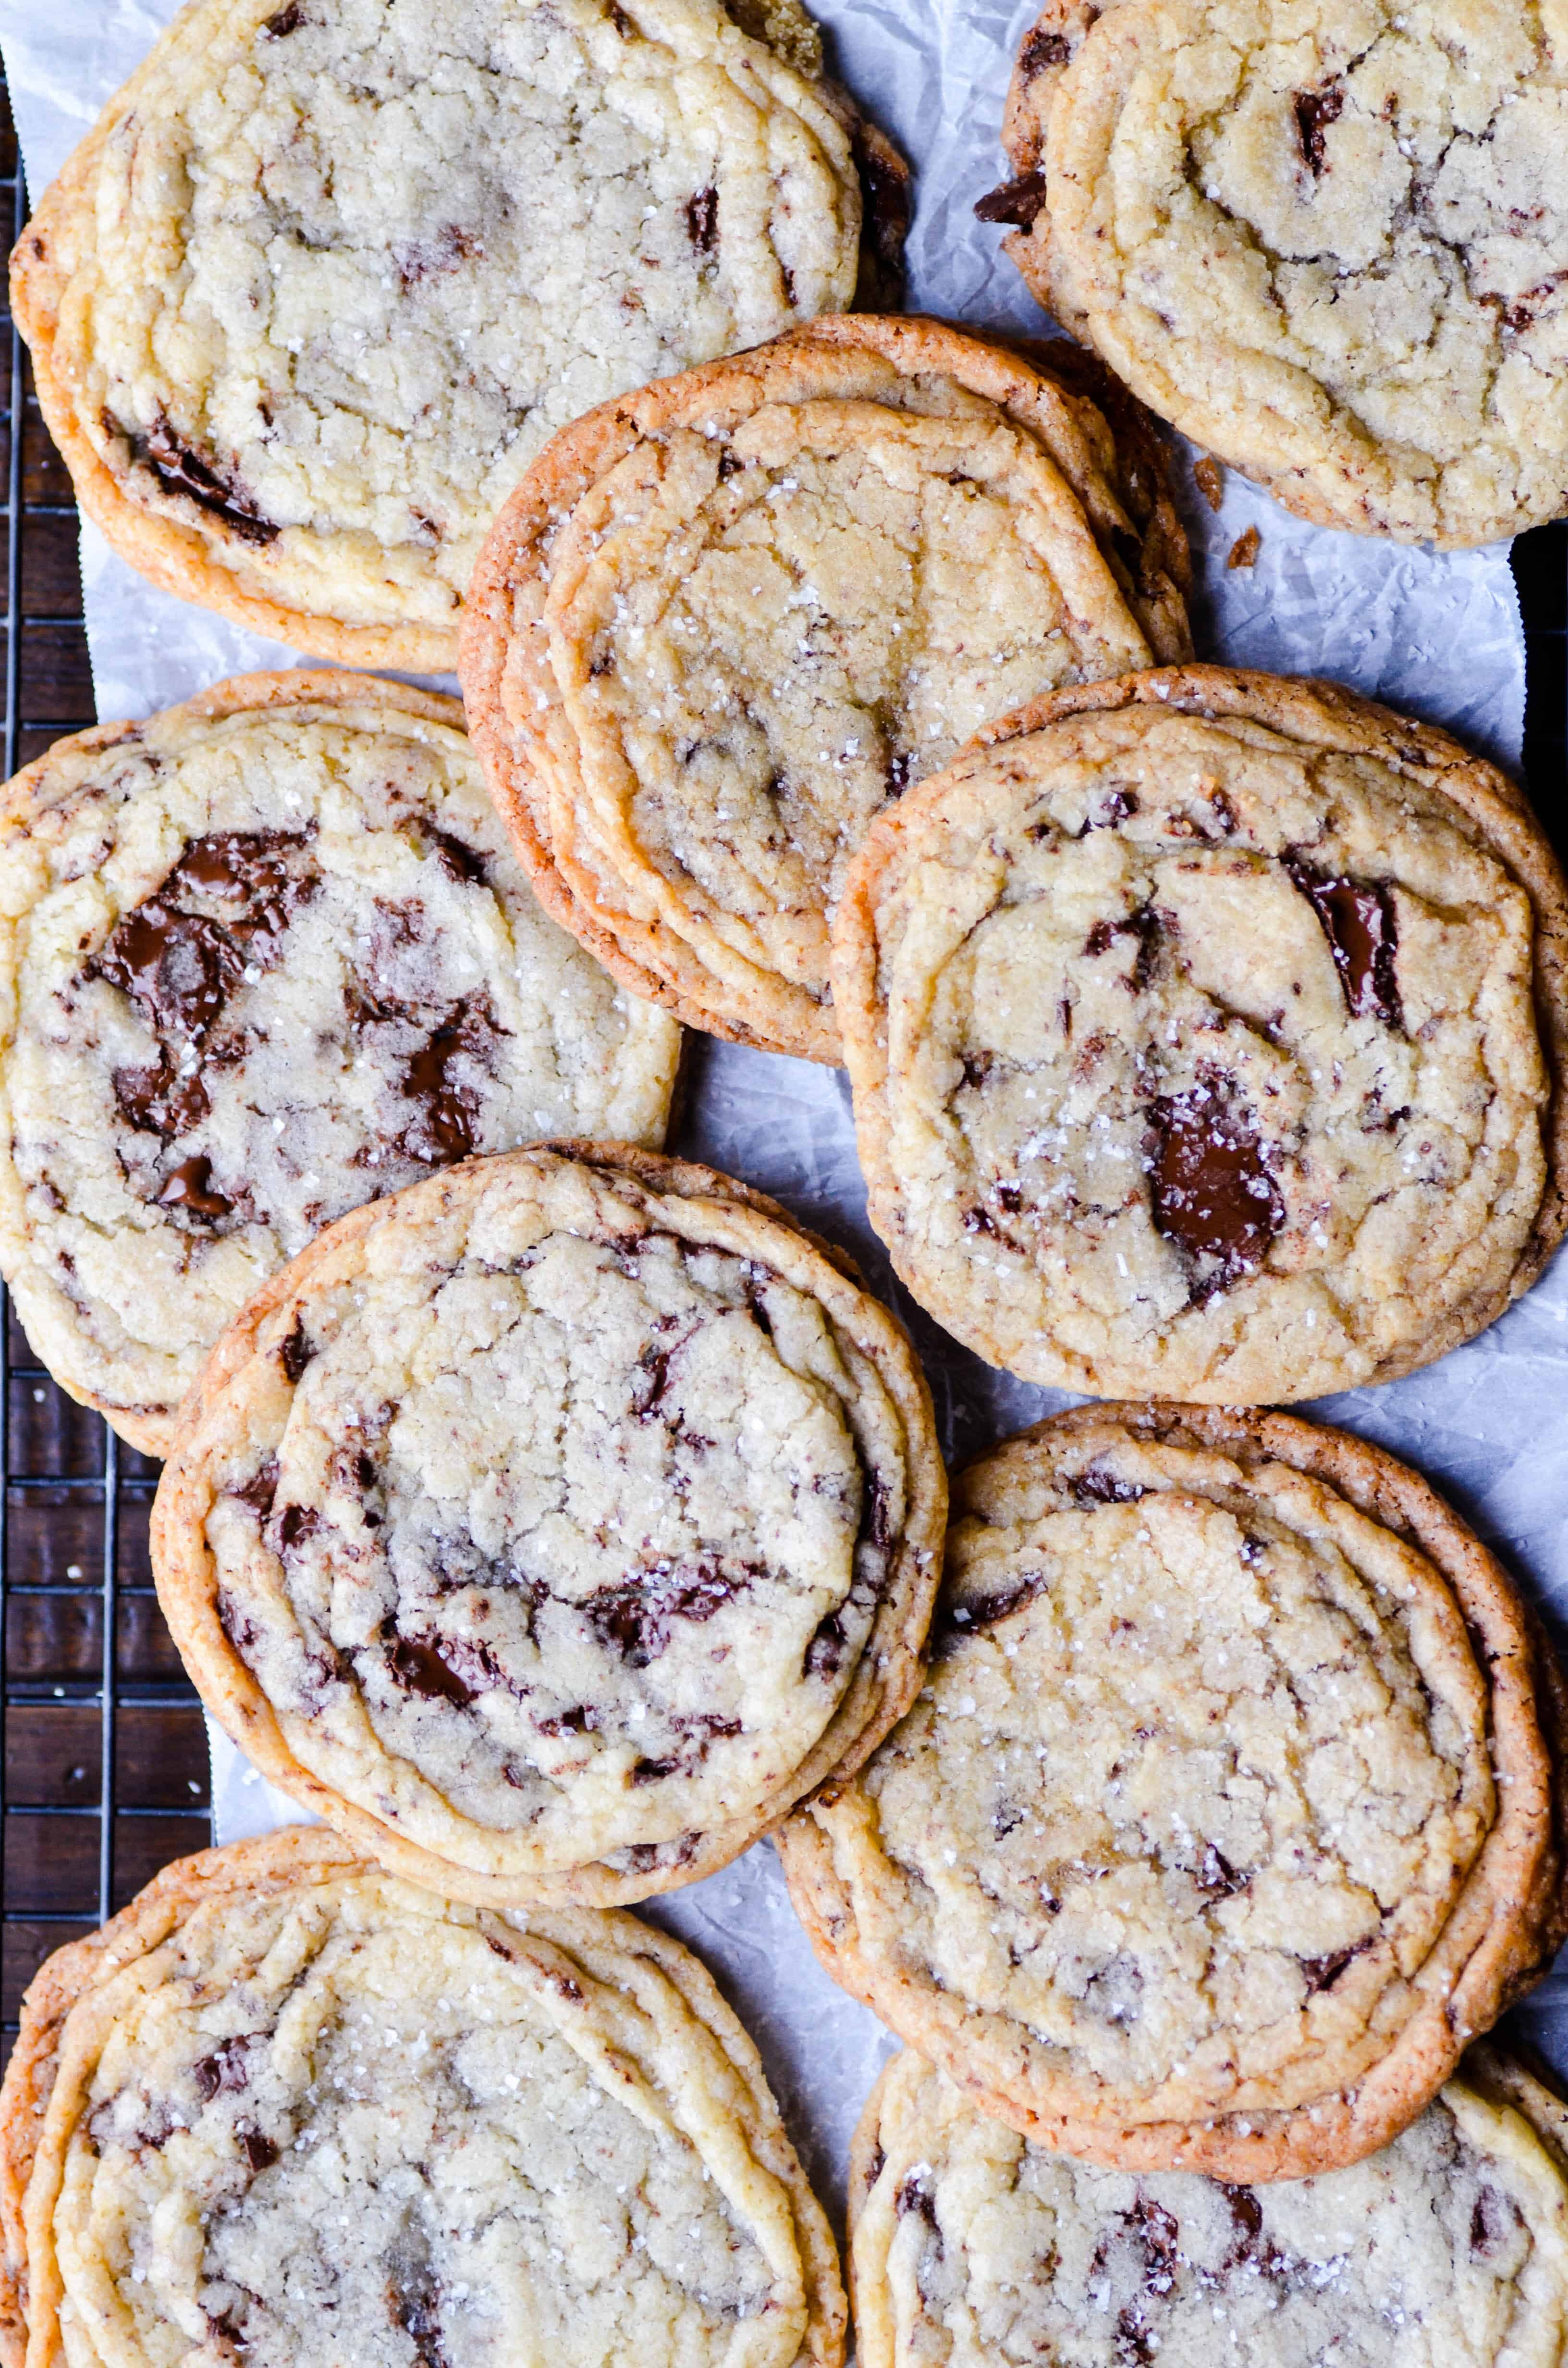 This recipe for chocolate chip cookies uses a special trick to create those crispy, golden ridges on the outside while keeping the centers soft and chewy.